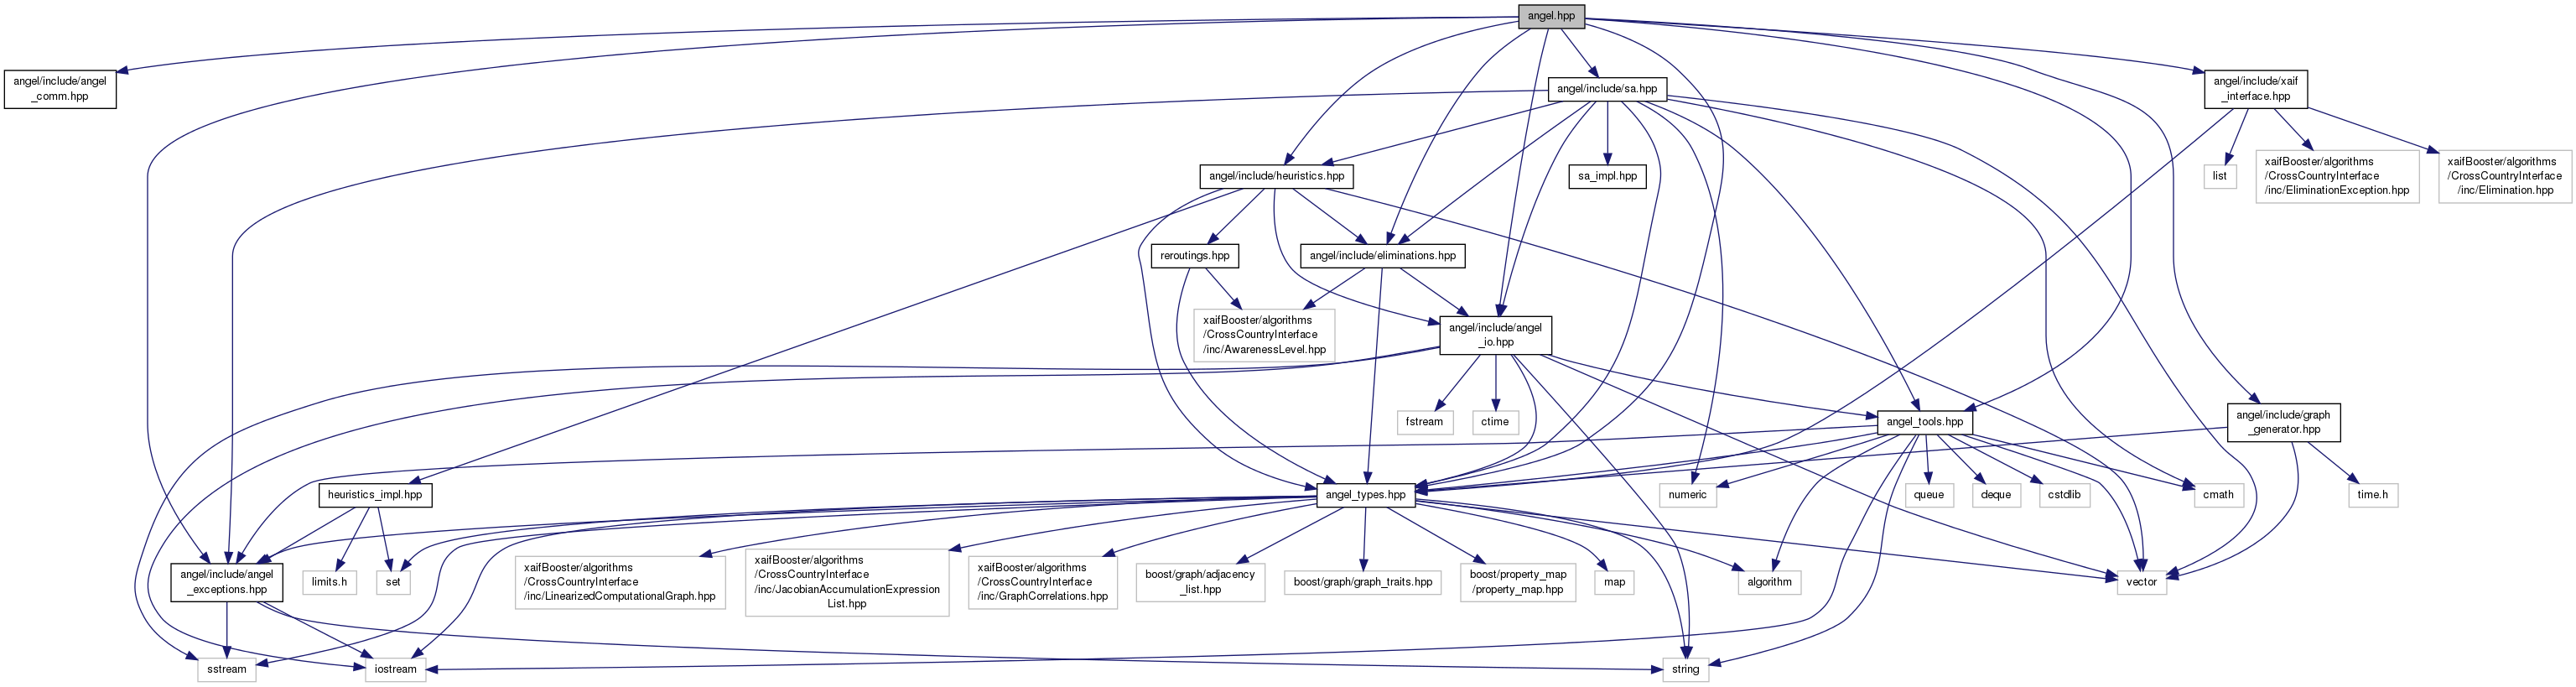 Angel Angelhpp File Reference Algorithm Generator Diagram Include Dependency Graph For